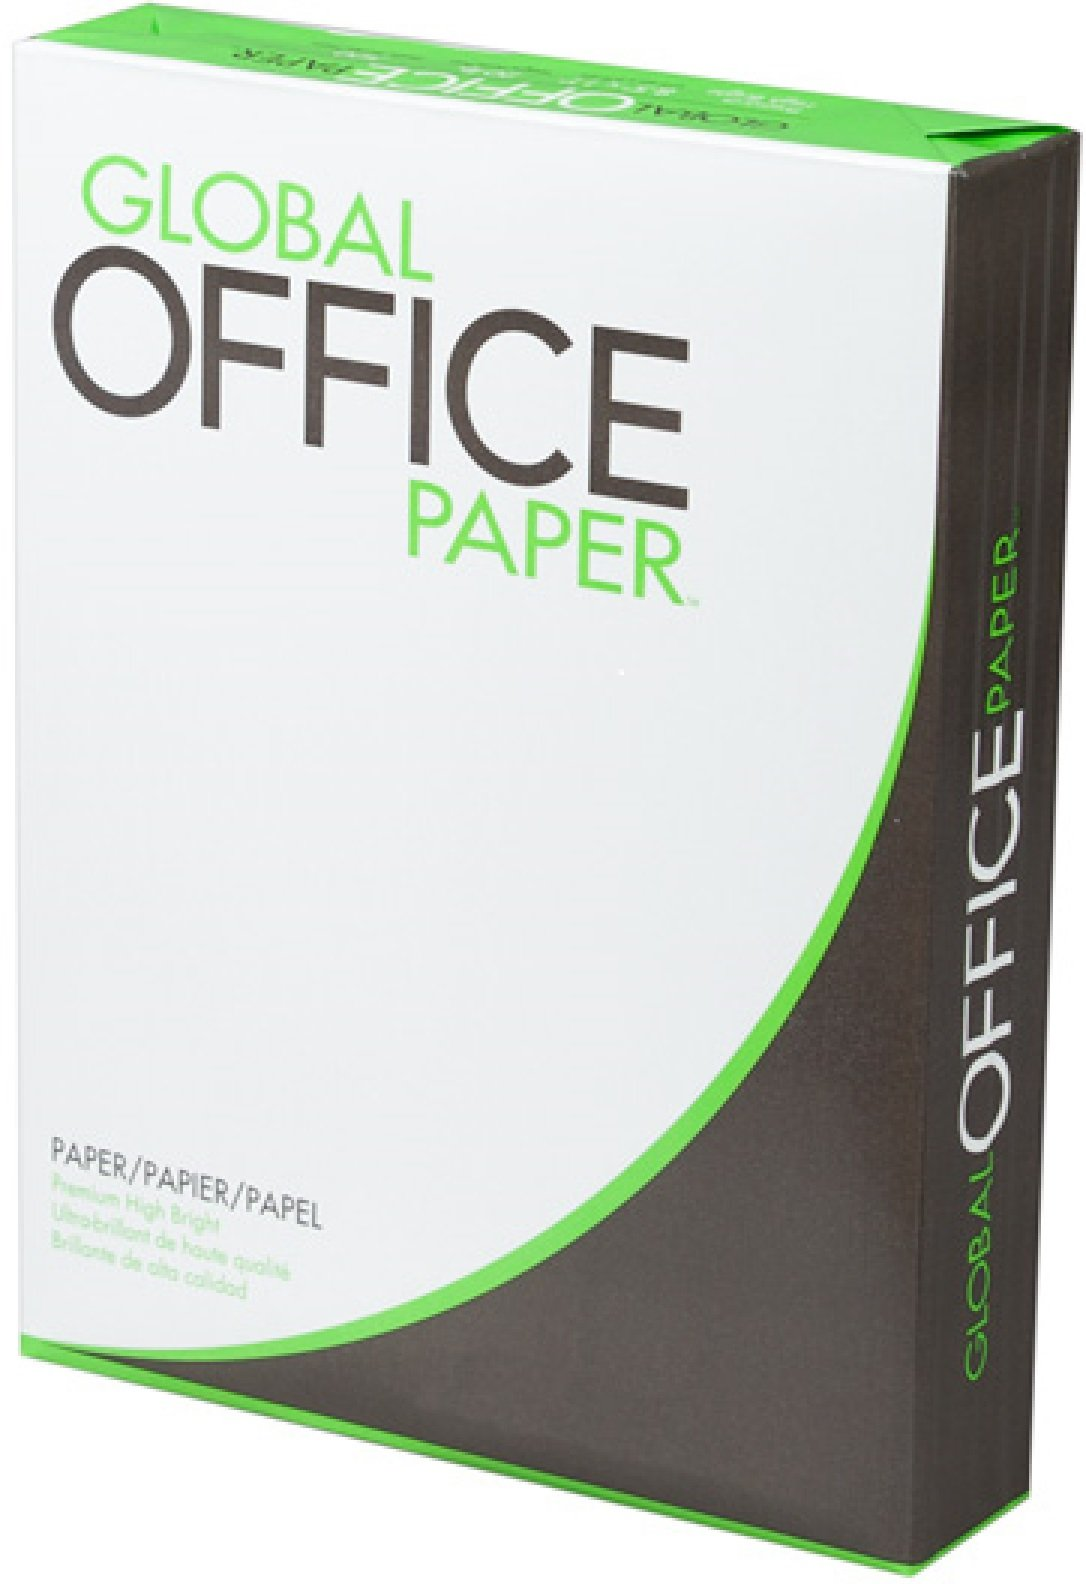 Global Office Paper High Brightness  Premium Smooth Copy Laser Inkjet, 8.5 X 11 Inch Letter Size, 20 Pound Density, 97 Bright, Acid-Free, Ream, 500 Total Sheets (GO851120)